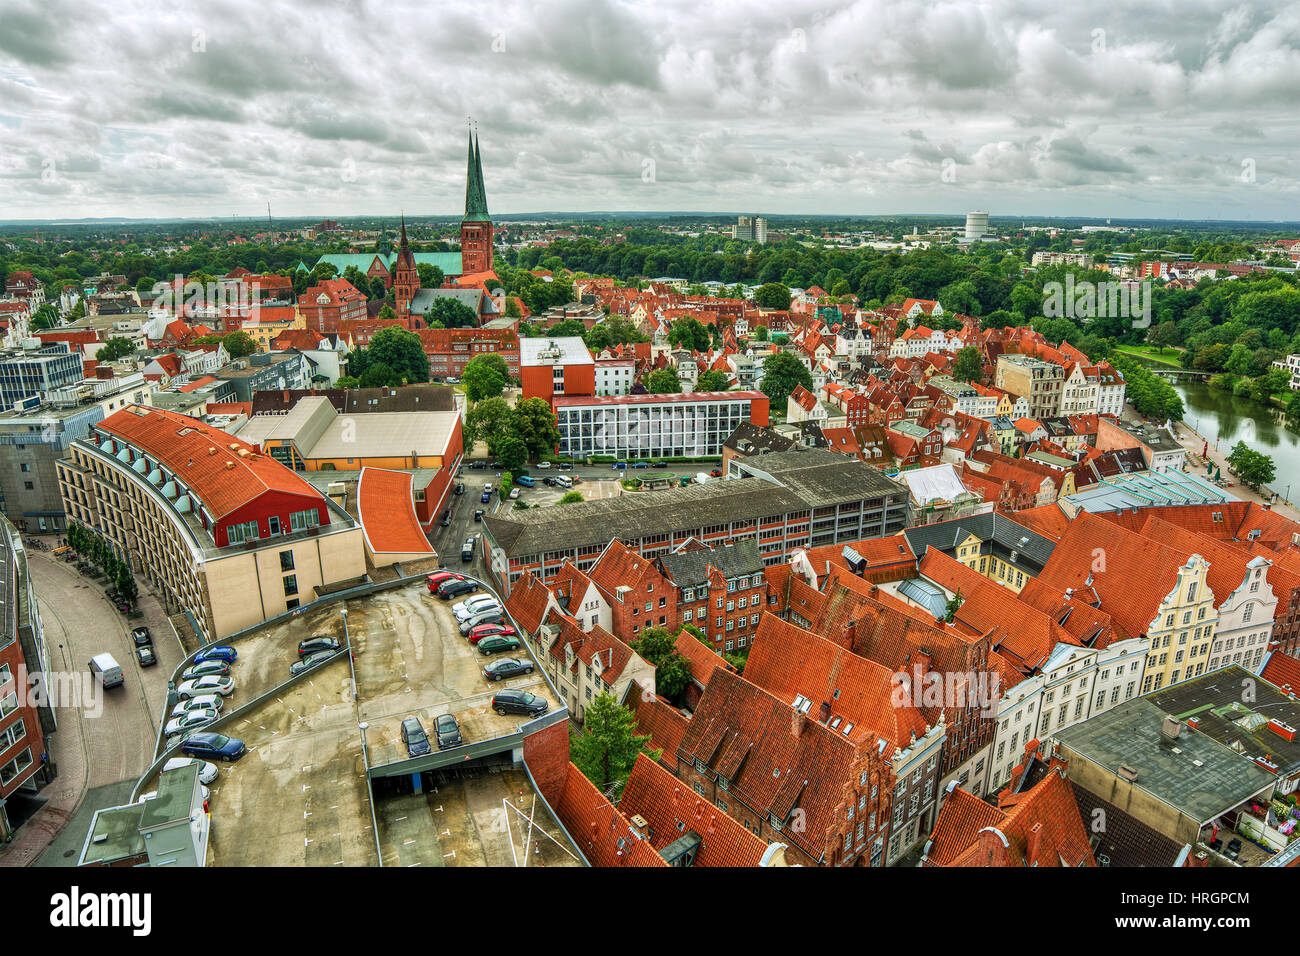 August 2016, cityscape of Lübeck (Germany), HDR-technique - Stock Image